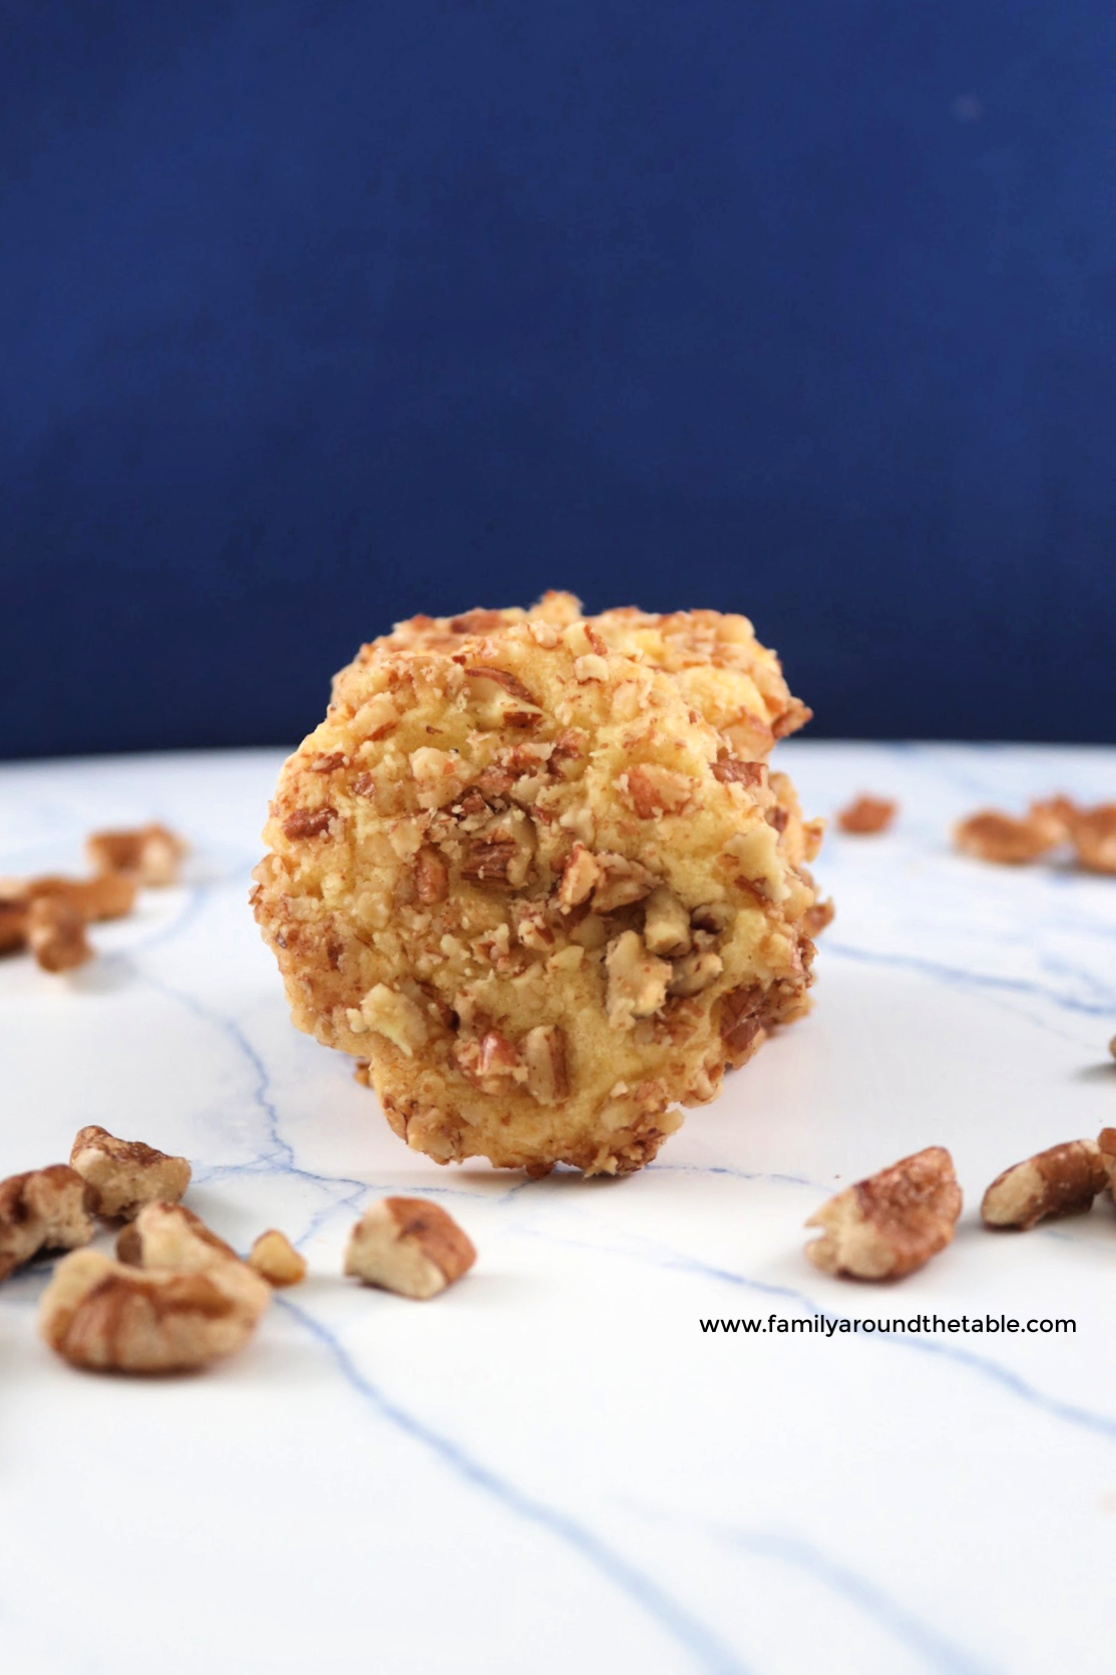 These orange pecan cookies are slightly crunchy and kissed with orange flavor.